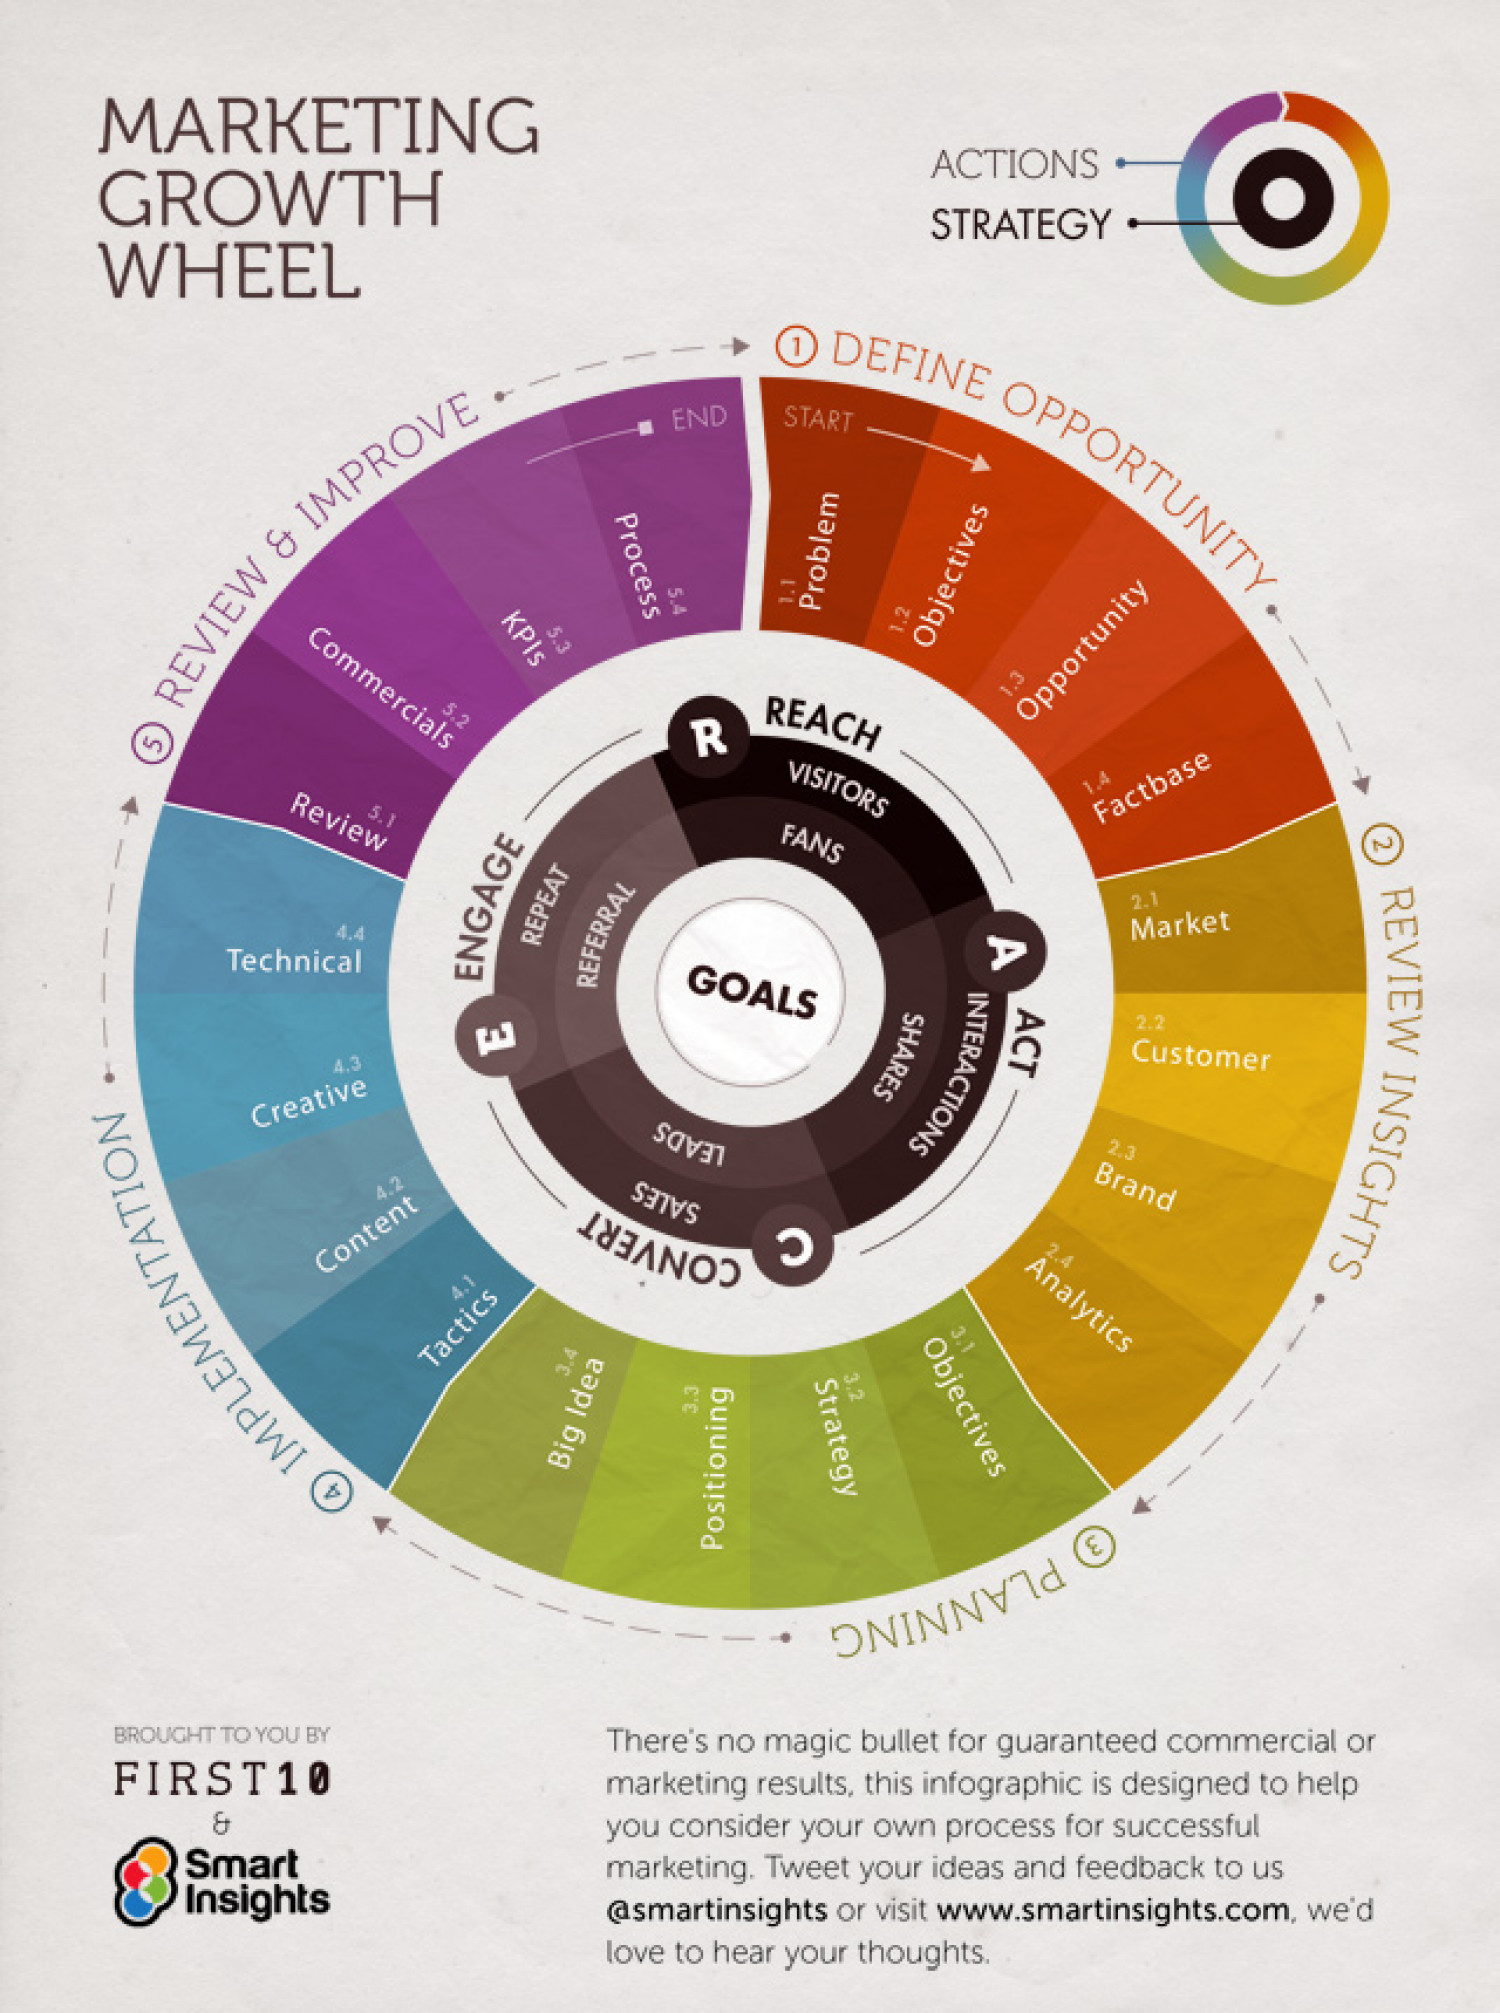 Marketing Growth Wheel Infographic